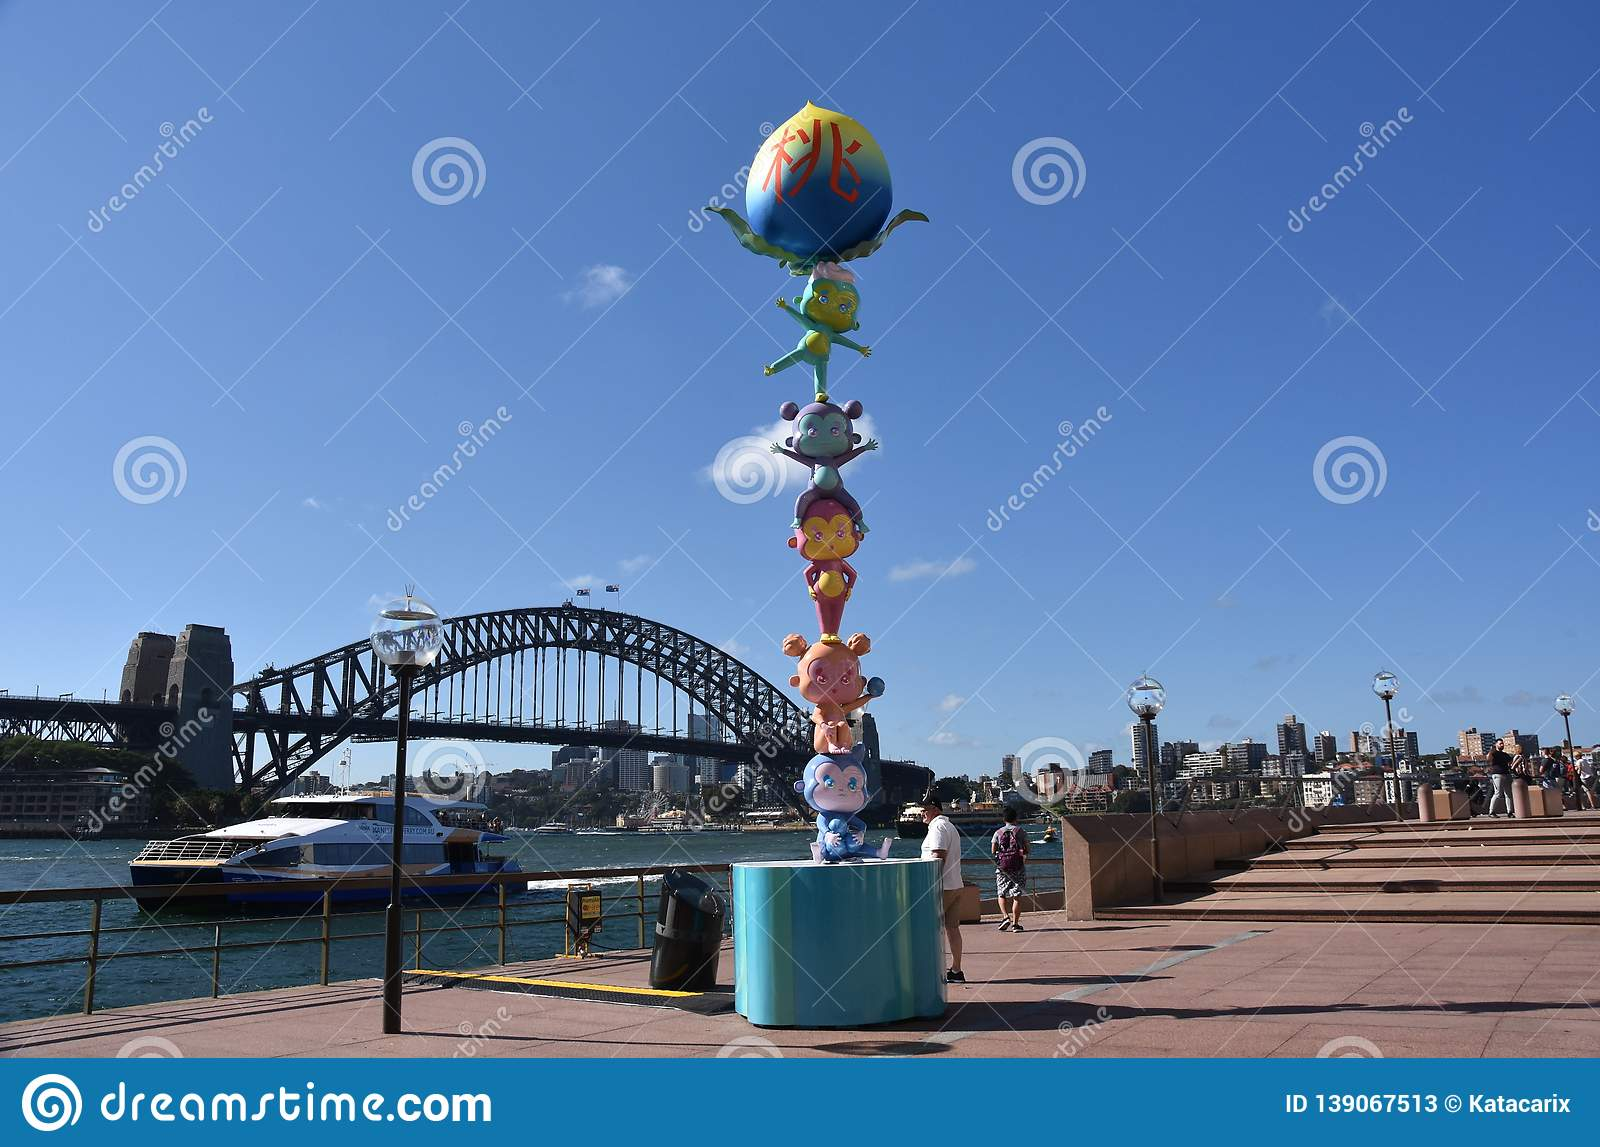 Larger than life lanterns in the shape of Monkey. Chinese zodiac animals at Circular Quay